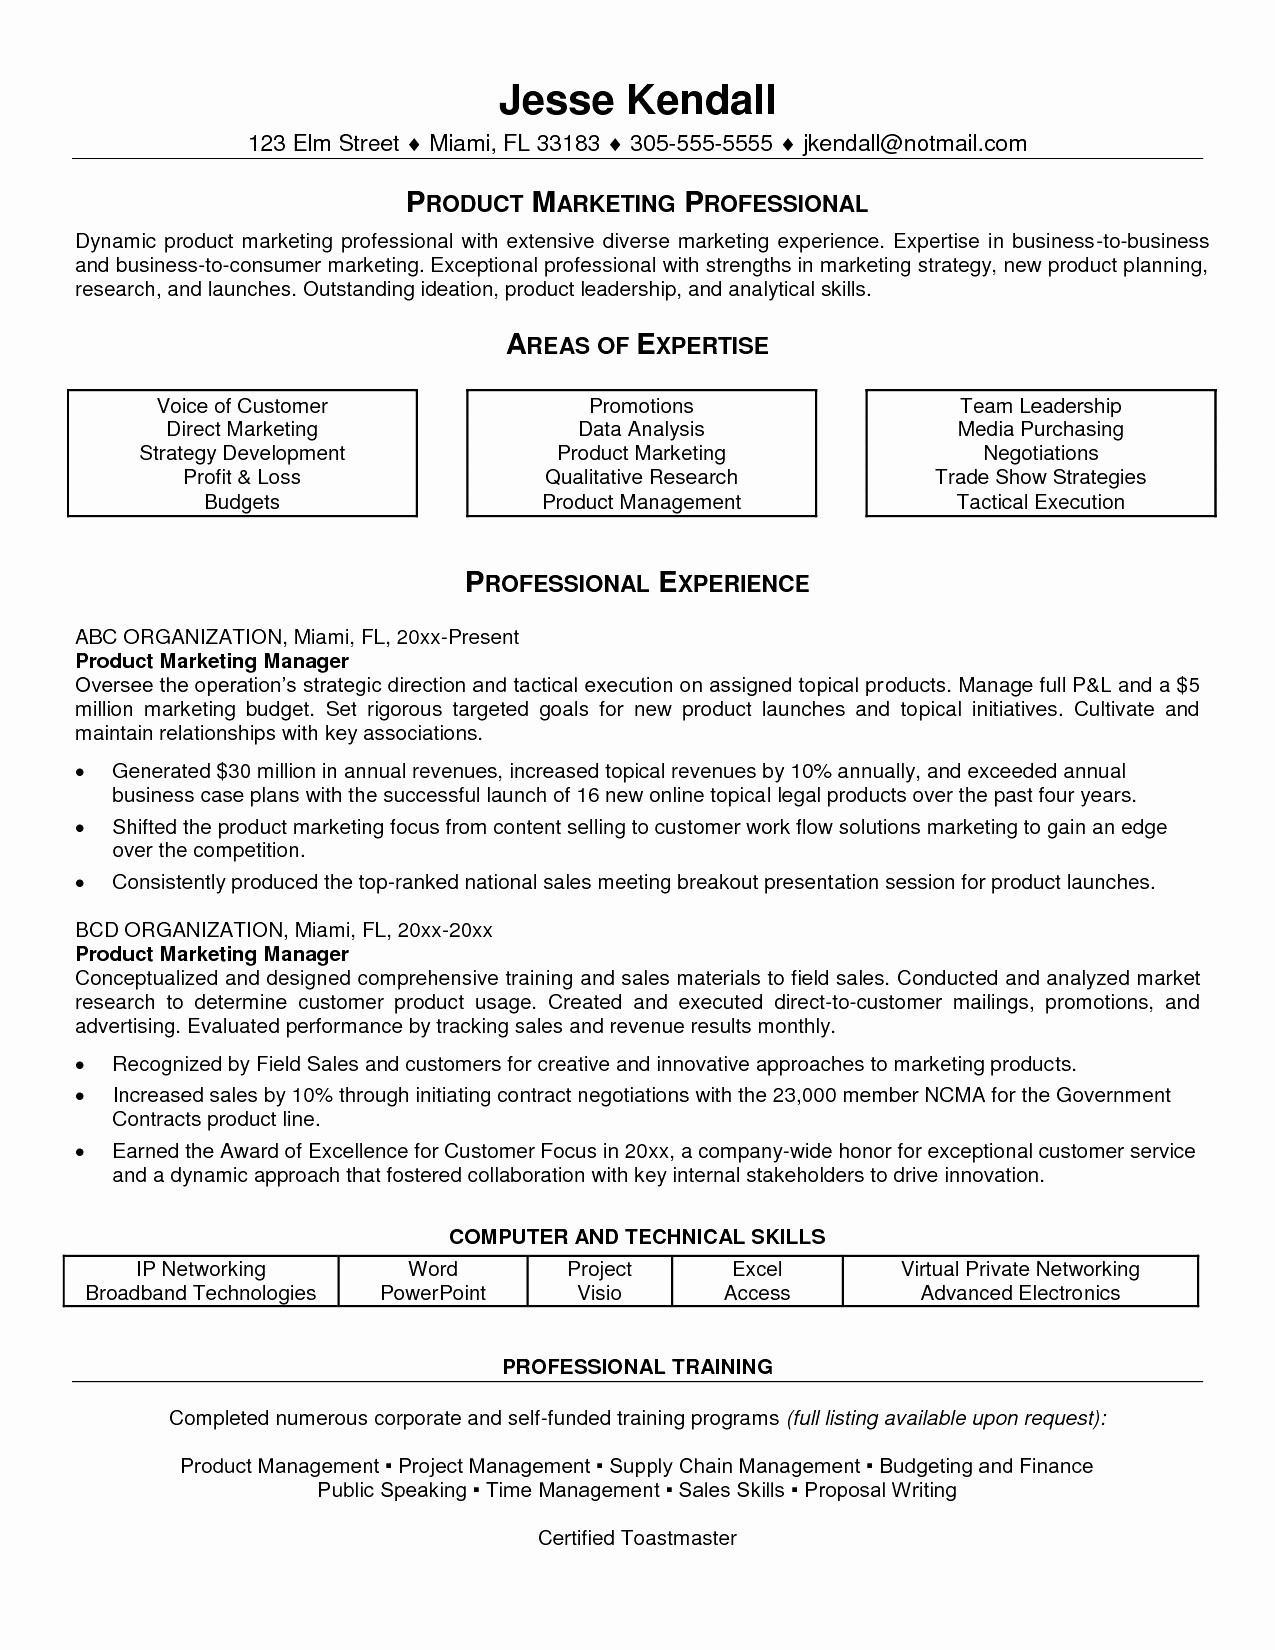 Skills to Mention In Resume - Skills for Resumes Beautiful Skill Resume Free Template Lovely